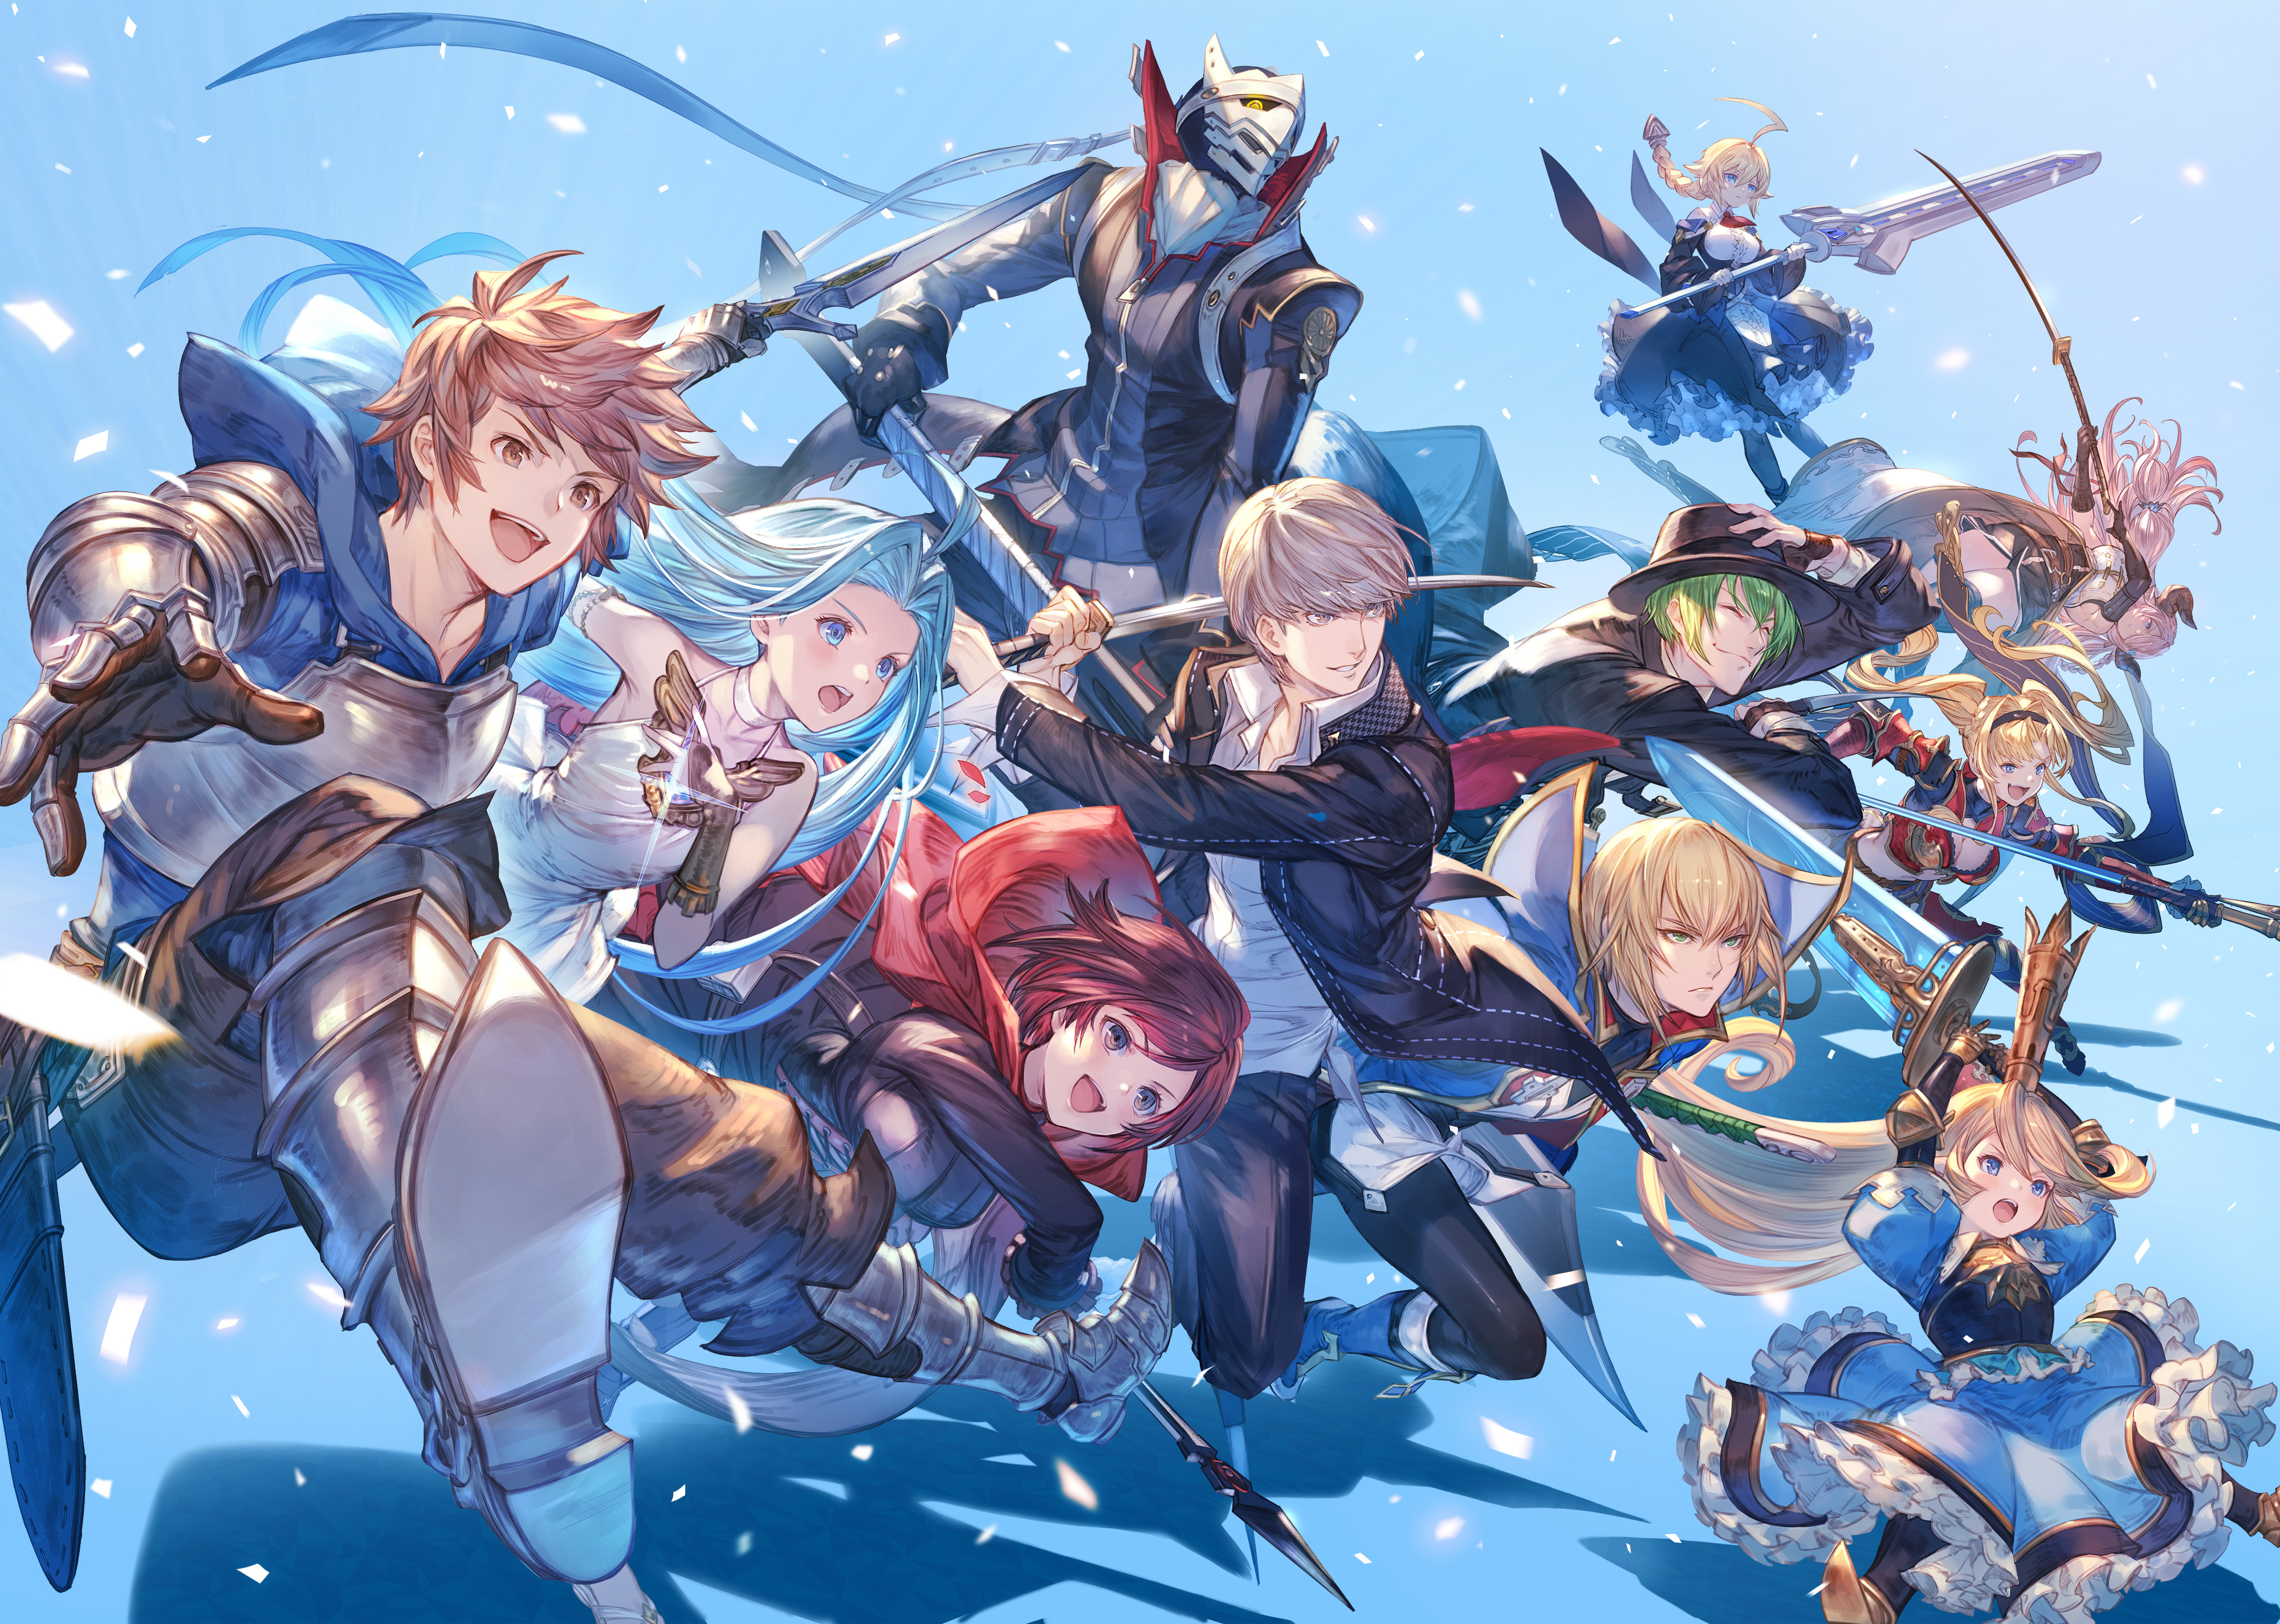 Granblue x BBTAG artwork 1 out of 2 image gallery